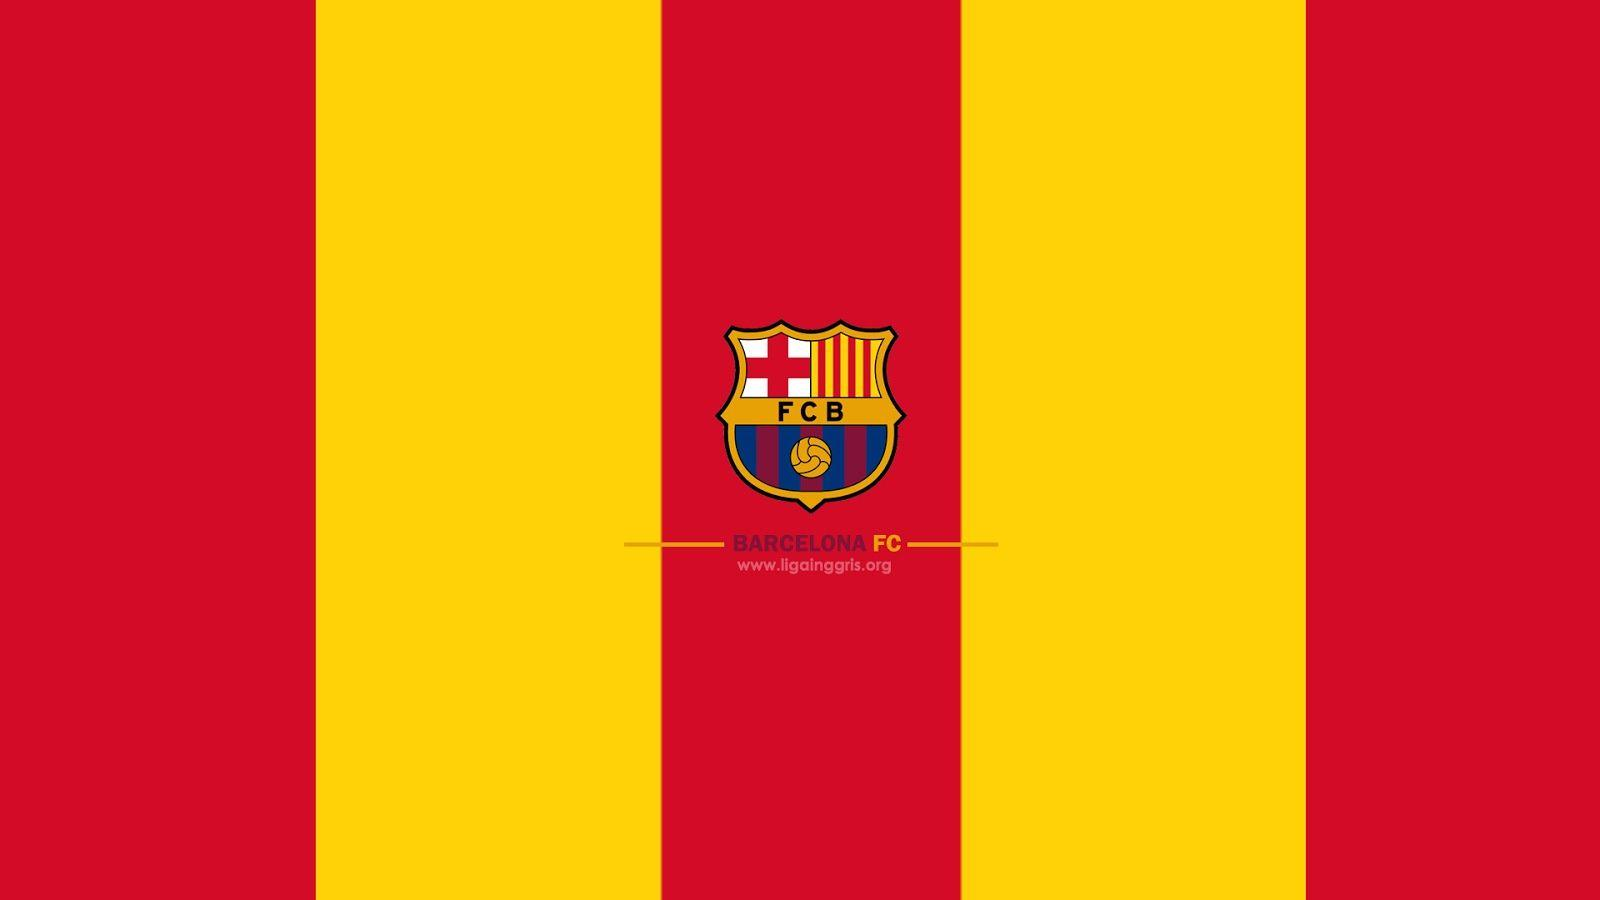 FCB Barcelona Logo Wallpapers HD Quality